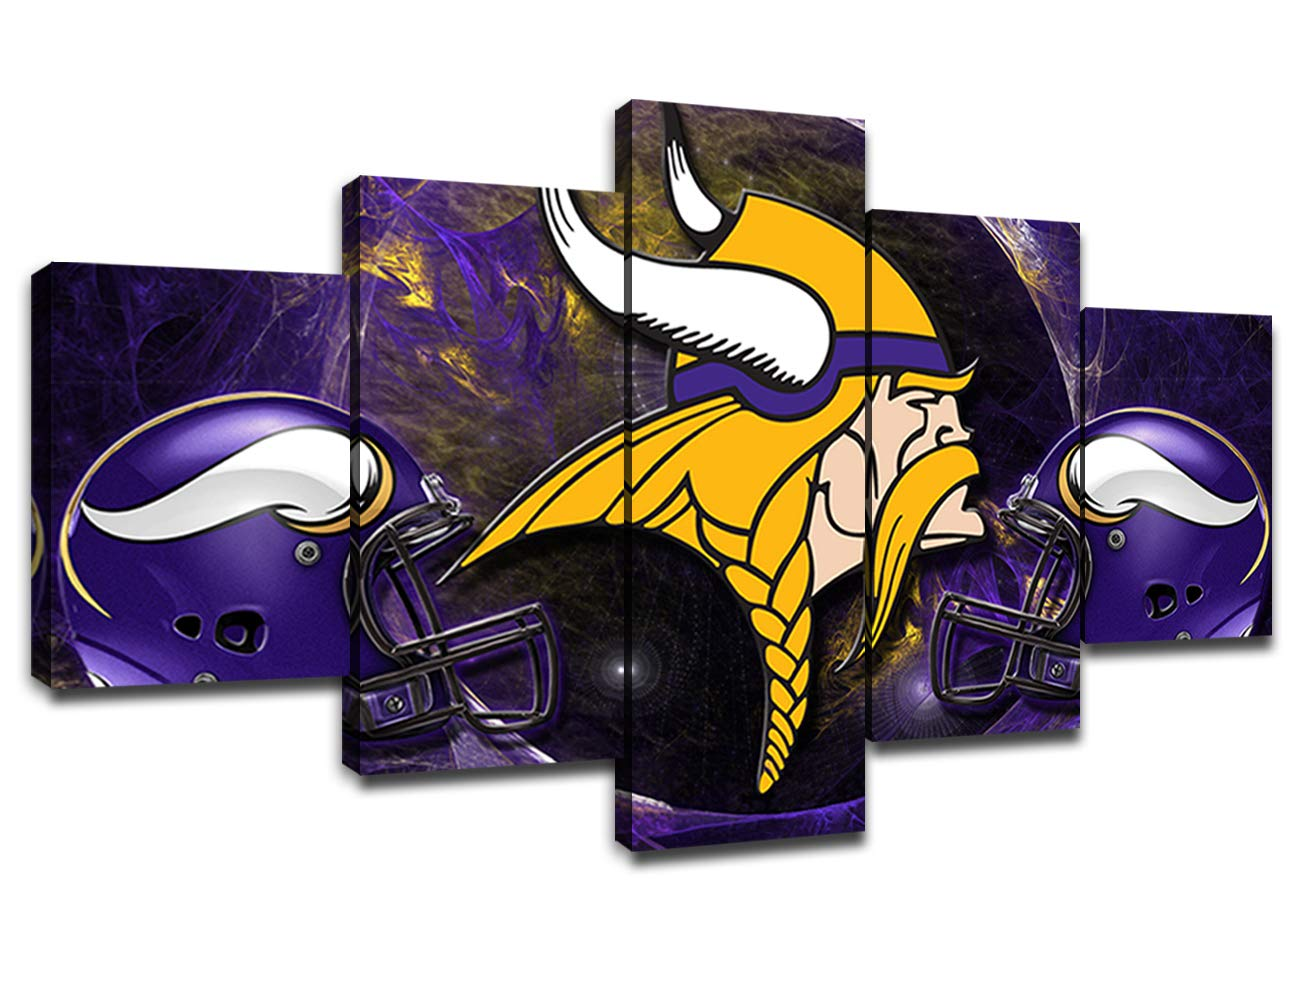 Minnesota Vikings NFL Team Logo Framed Wall Art Decor Modern Art Paintings 5 Piece Canvas Home Decoration Wall Picture Home Artwork American Football Prints Poster(60''Wx32''H)